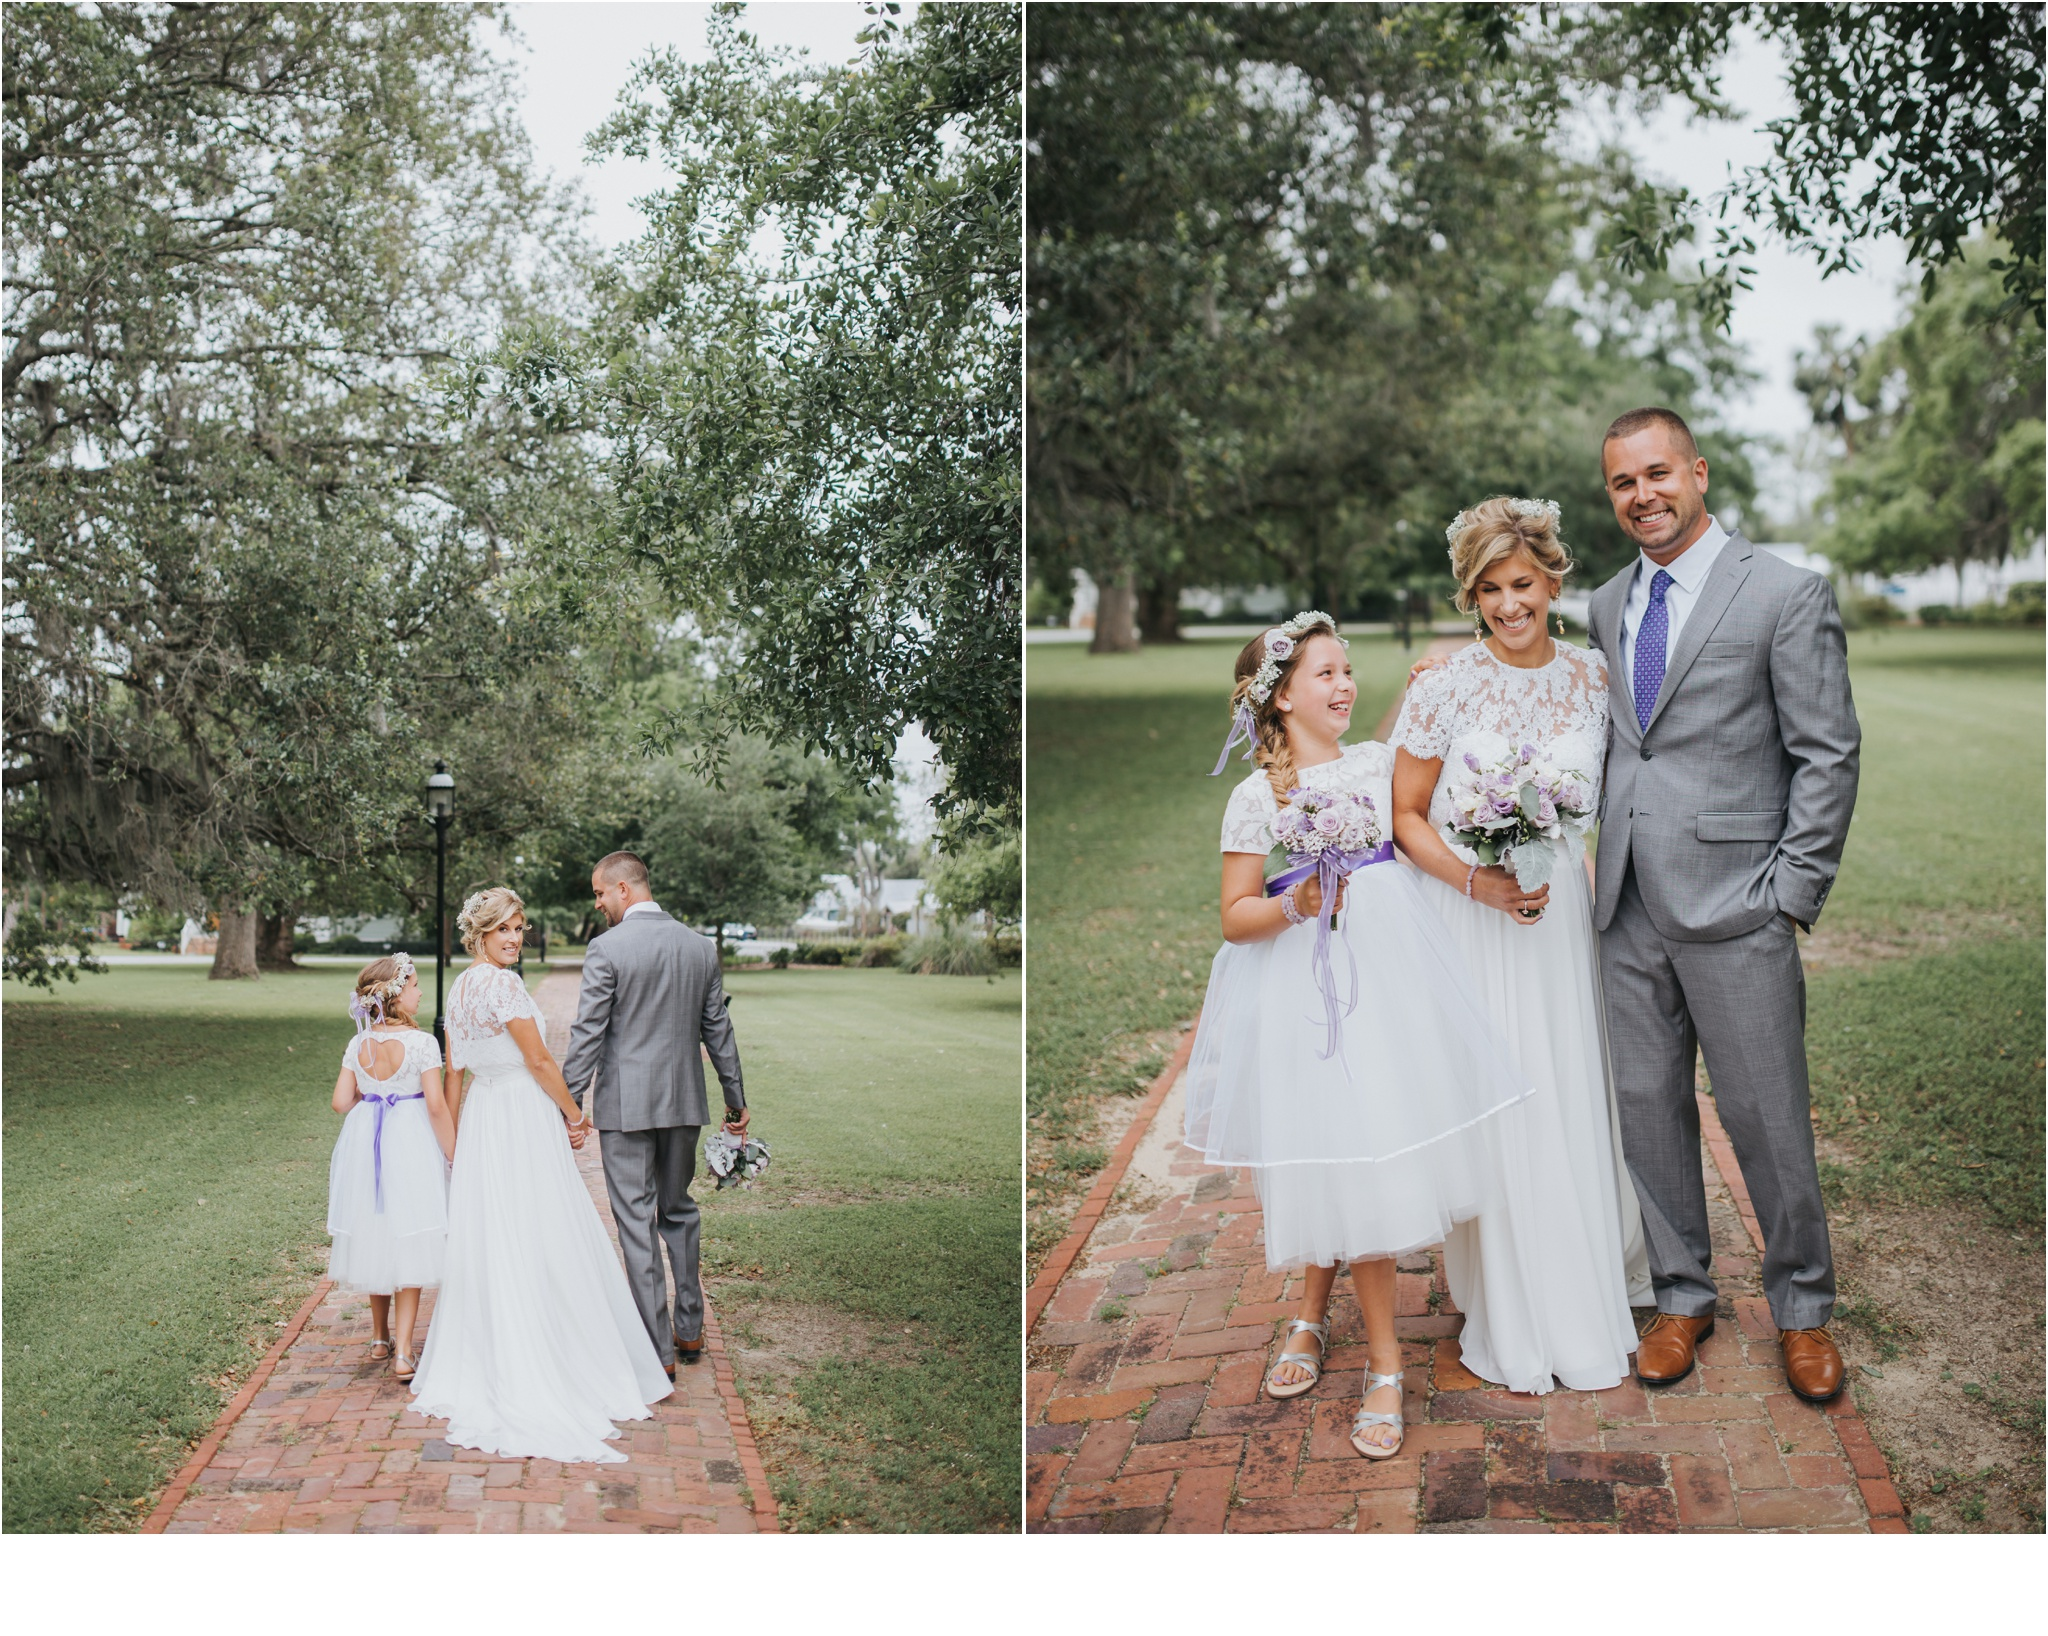 Rainey_Gregg_Photography_St._Simons_Island_Georgia_California_Wedding_Portrait_Photography_1502.jpg